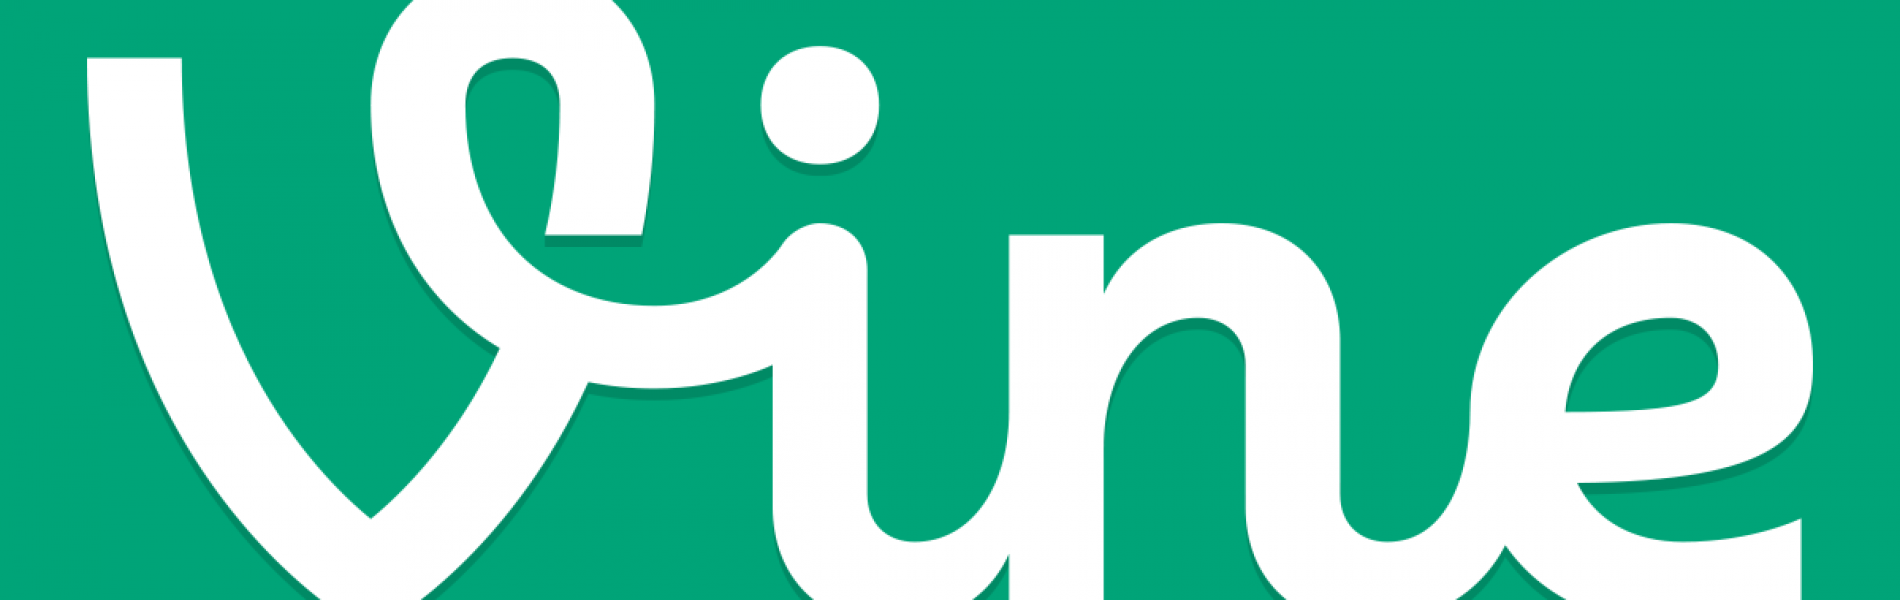 Bad @Vine Stars try to hold the App Hostage